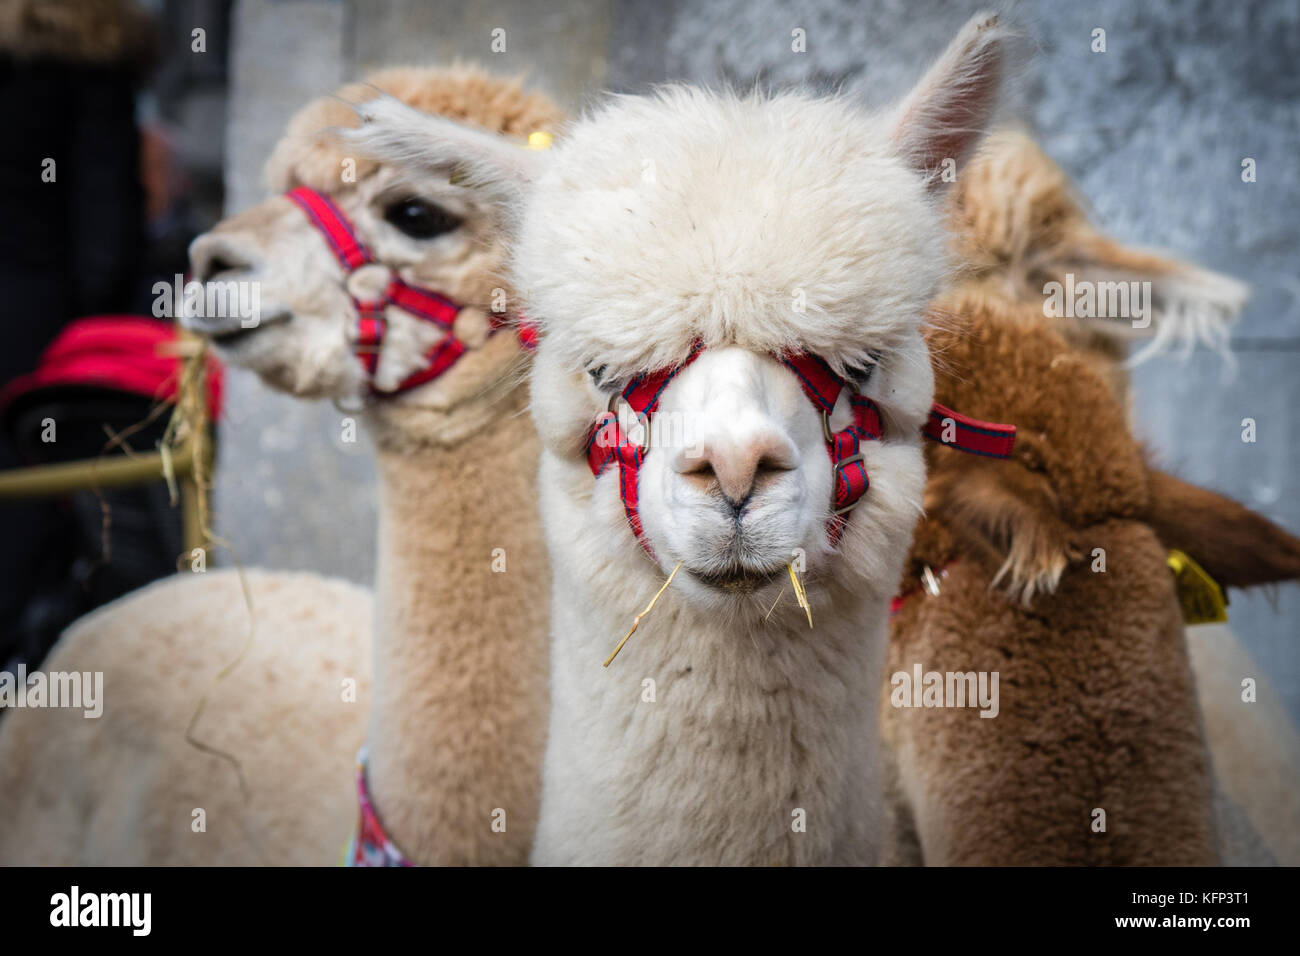 The Alpacas created alot of interest on show at Savour Kilkenny Food Festival, Kilkenny, ireland 27th and 28th October - Stock Image